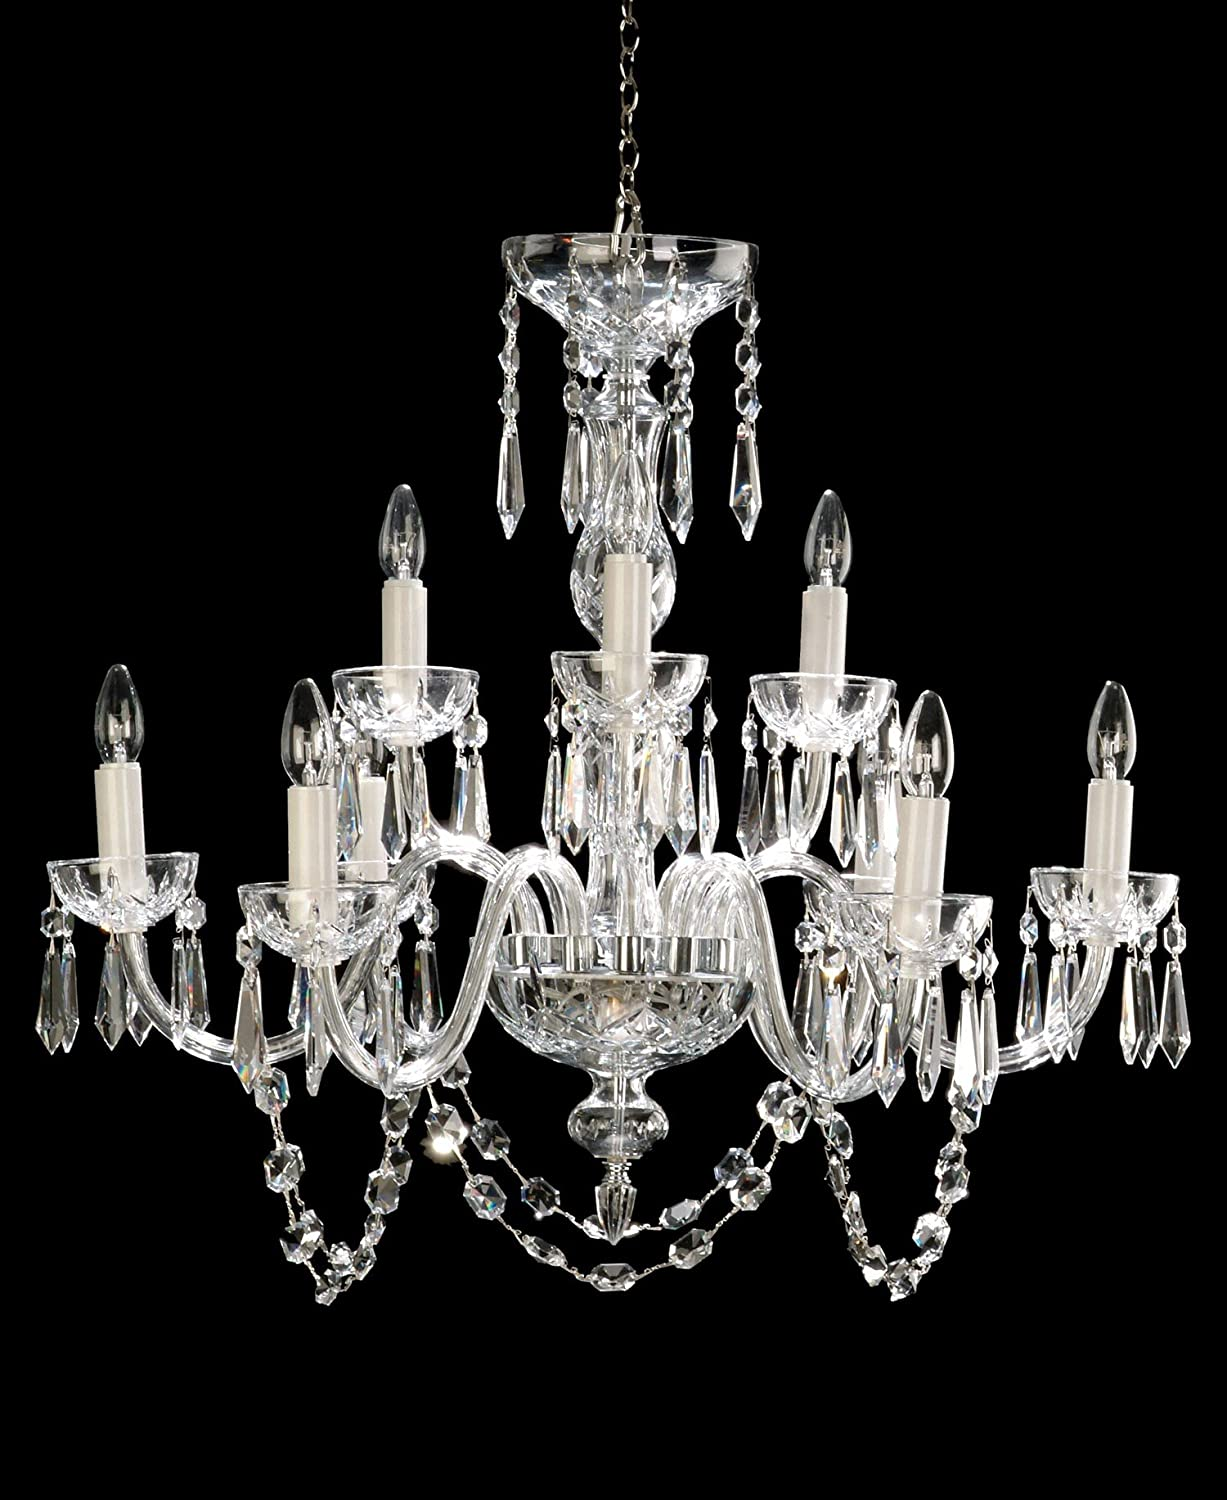 Waterford crystal lismore nine arm chandelier amazon arubaitofo Gallery